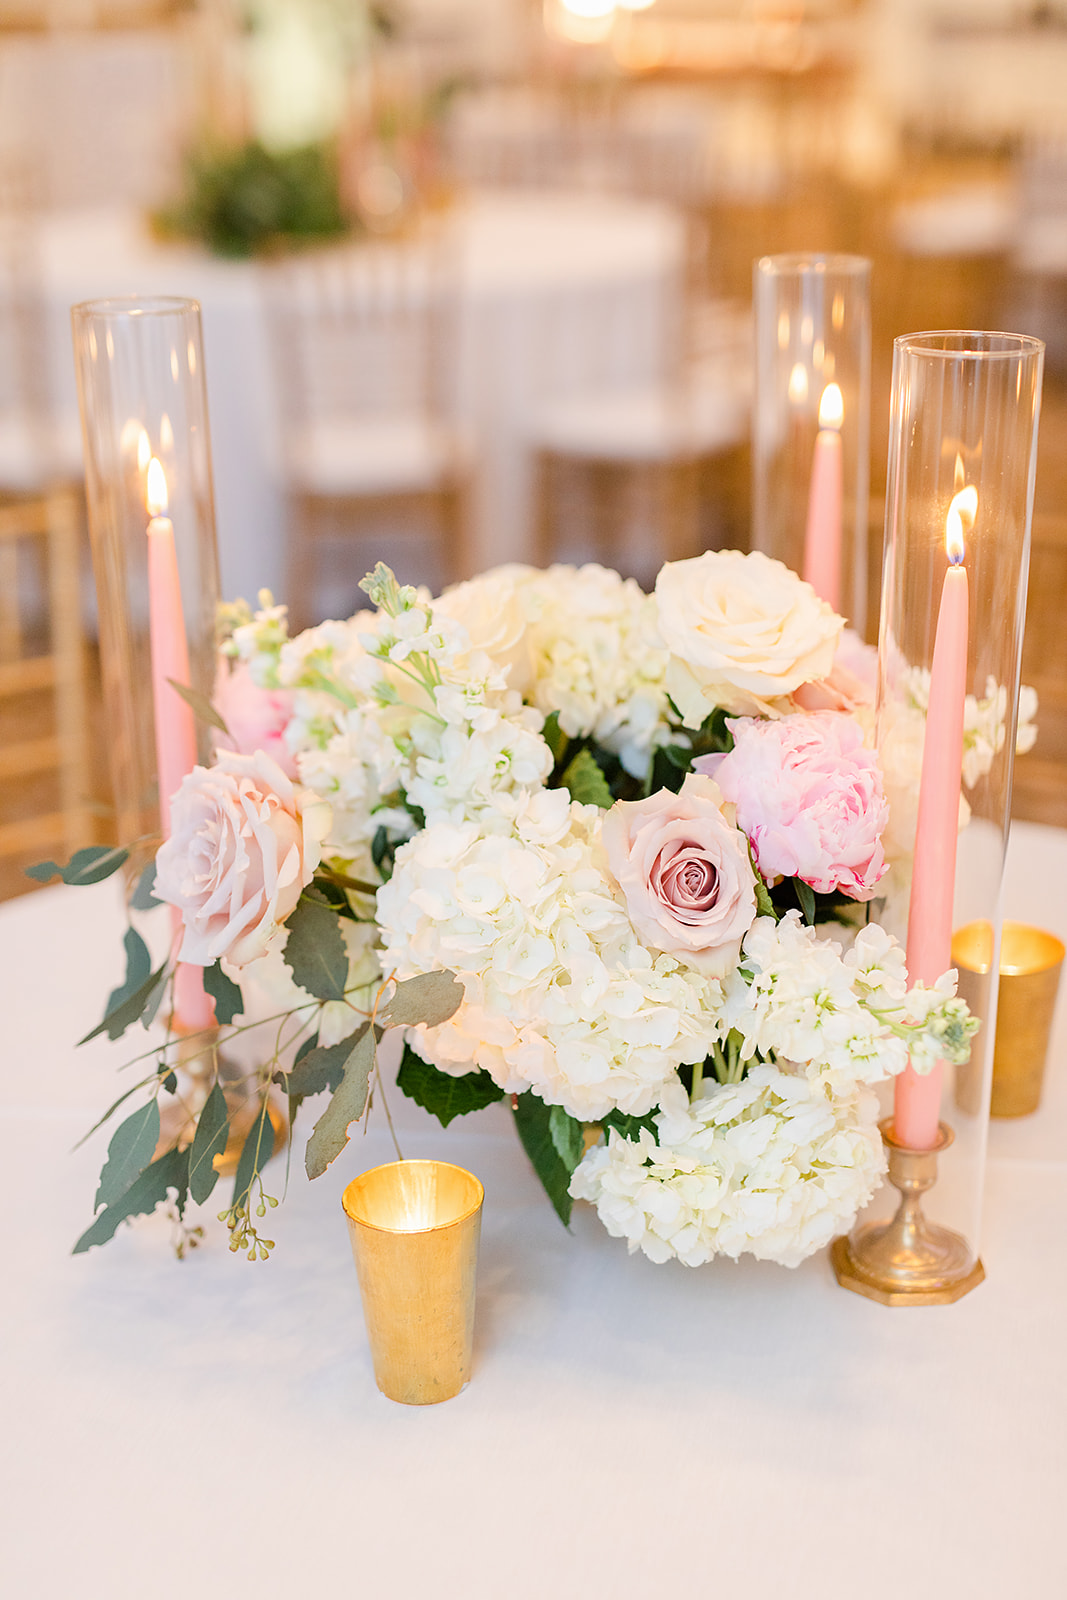 Blush-Black-Tie-Wedding-at-the-Grand-Hotel-in-Point-Clear-Alabama-Anna-Filly-Photography-Cross-Wedding-Reception_2_--1.jpg